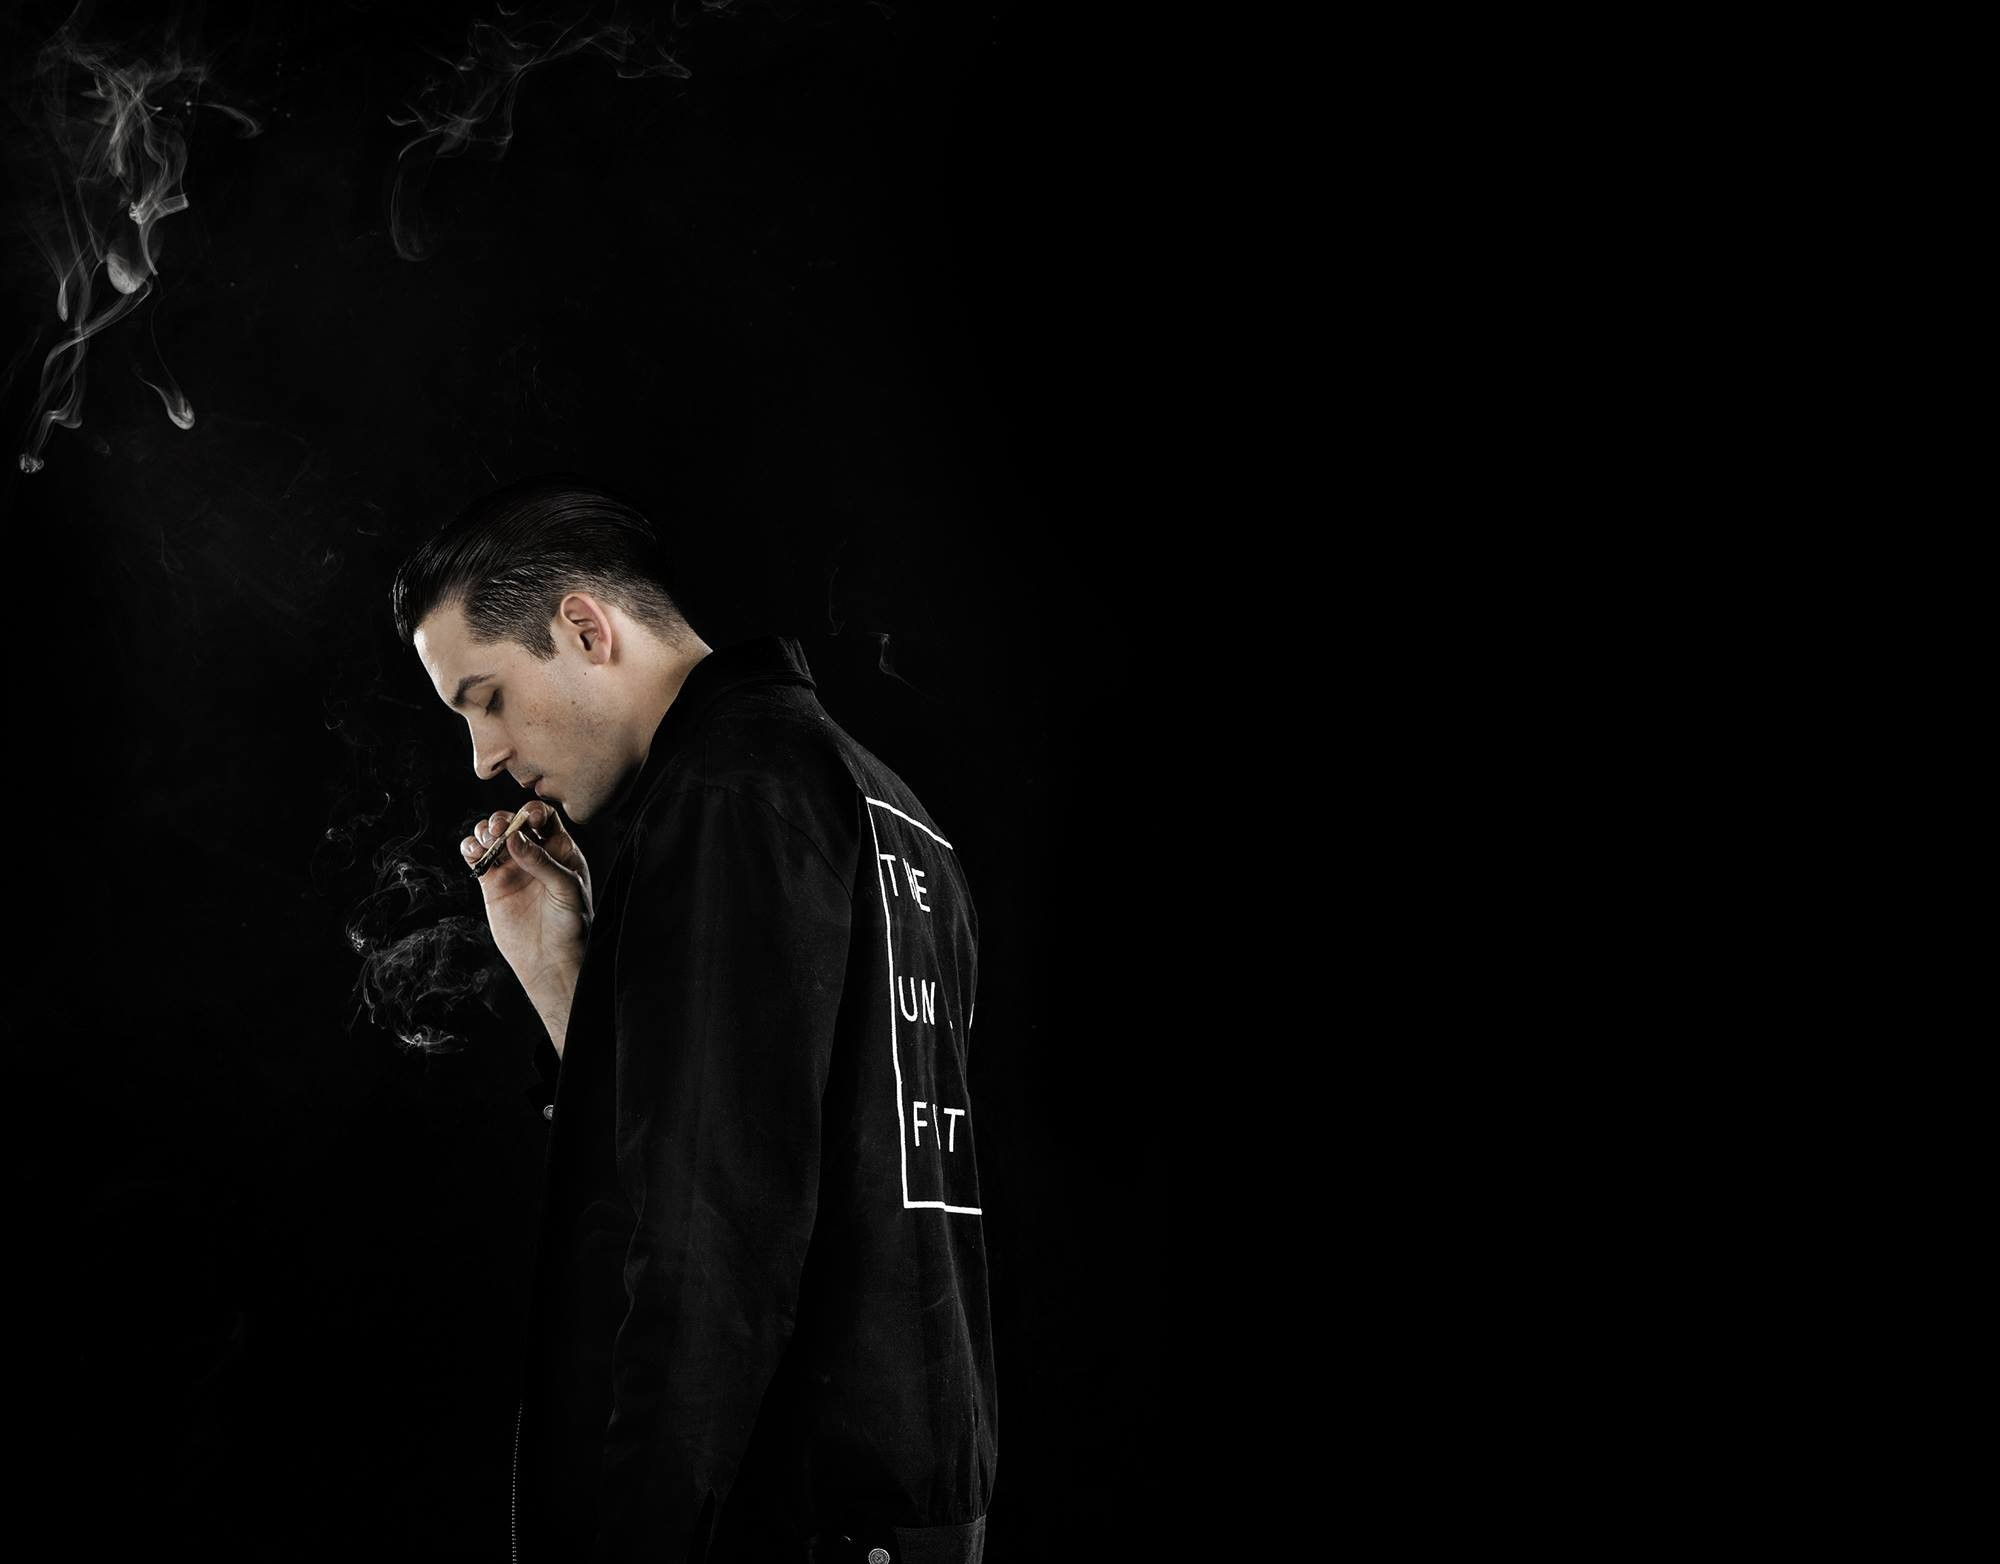 pictures · G-Eazy pictures